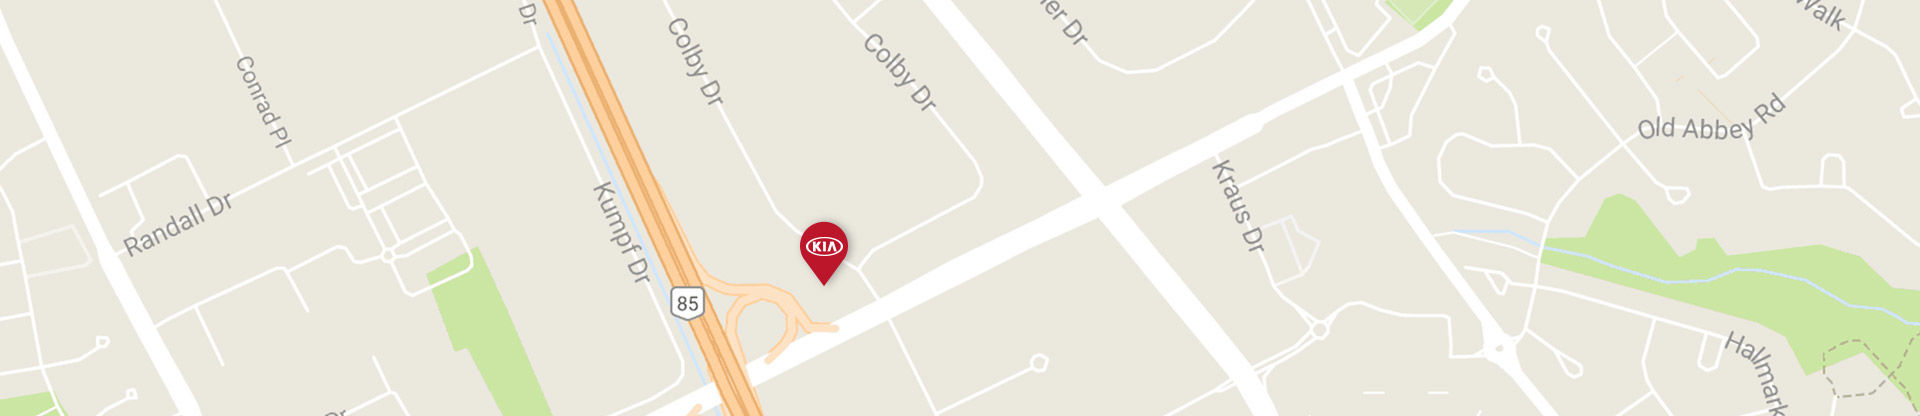 Kia waterloo location